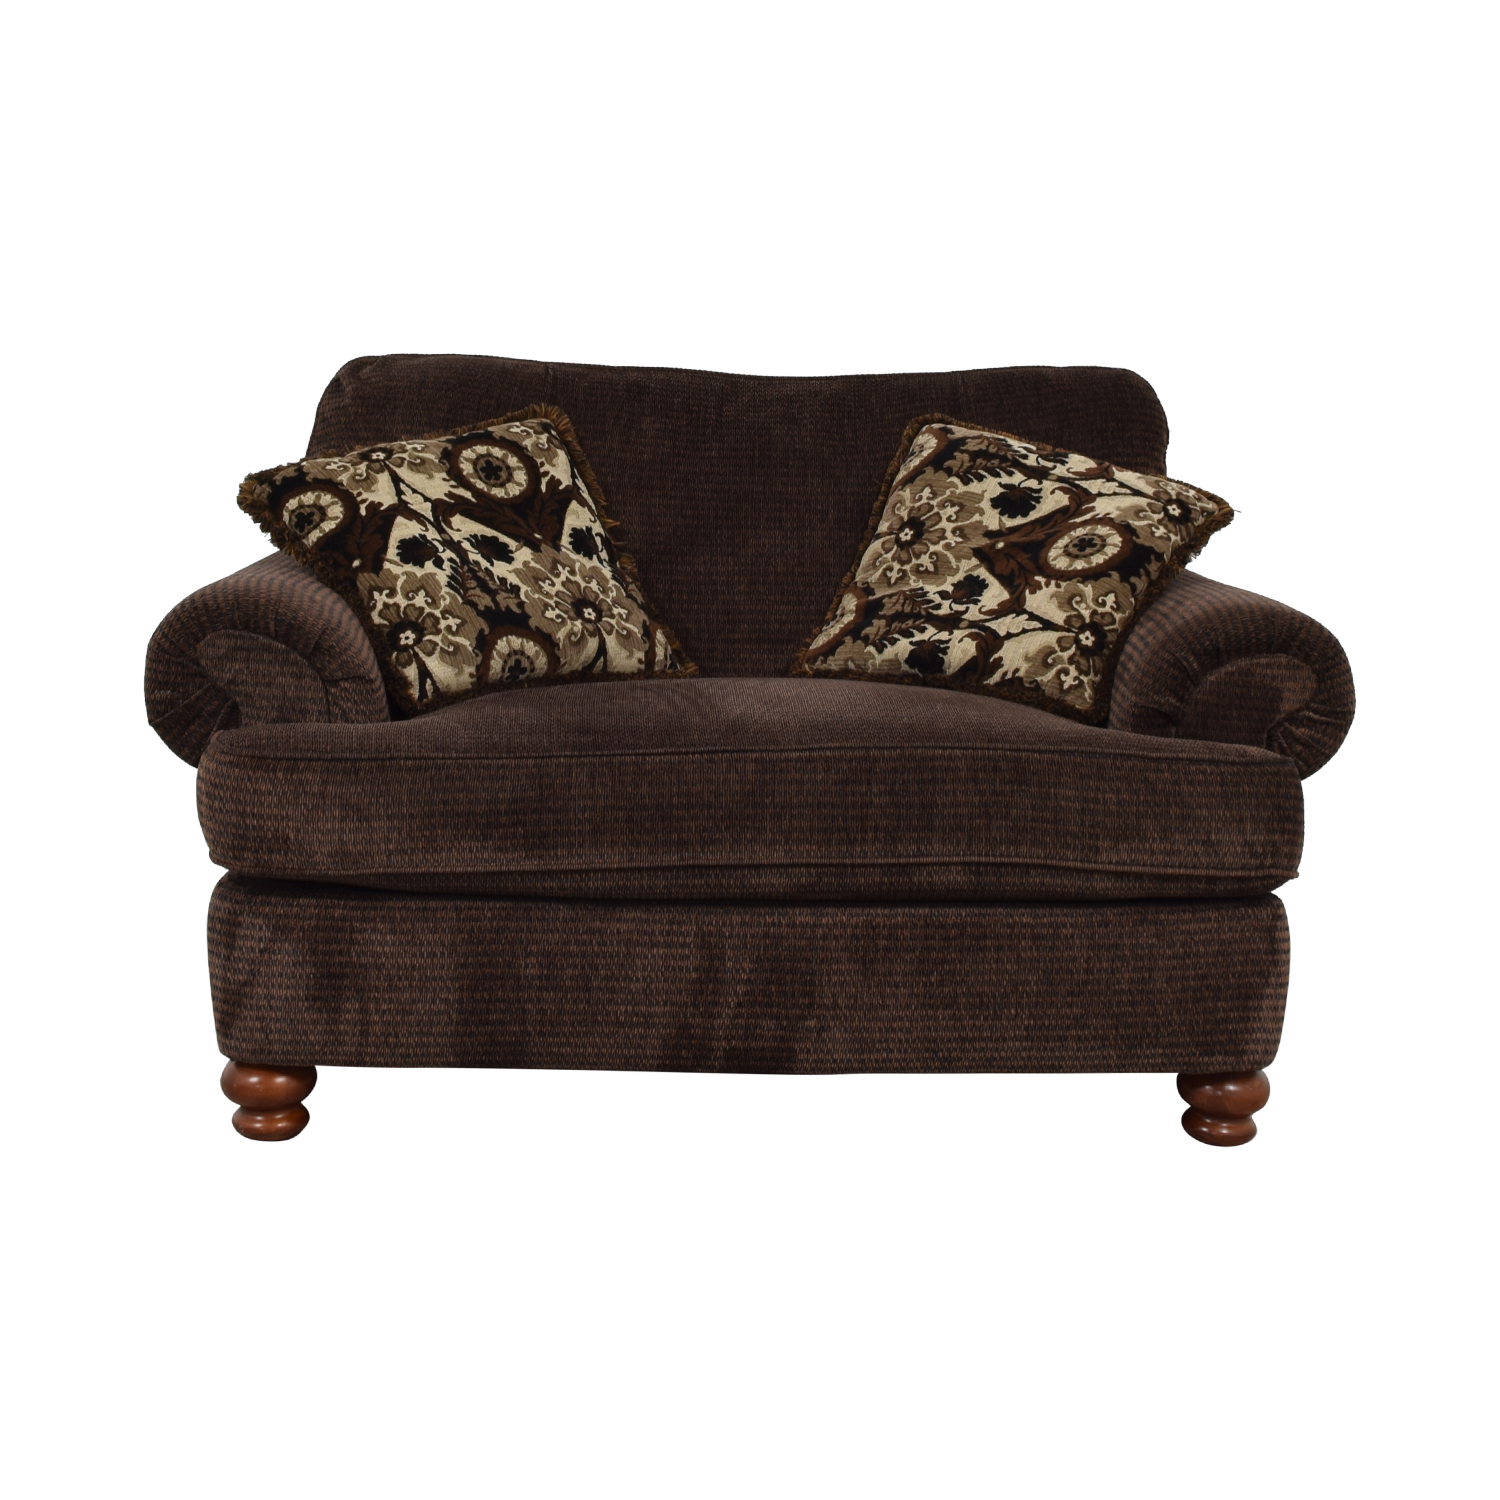 Prime 60 Off Jackson Furniture Jackson Furniture Brown Oversize Chaise And Ottoman Chairs Machost Co Dining Chair Design Ideas Machostcouk